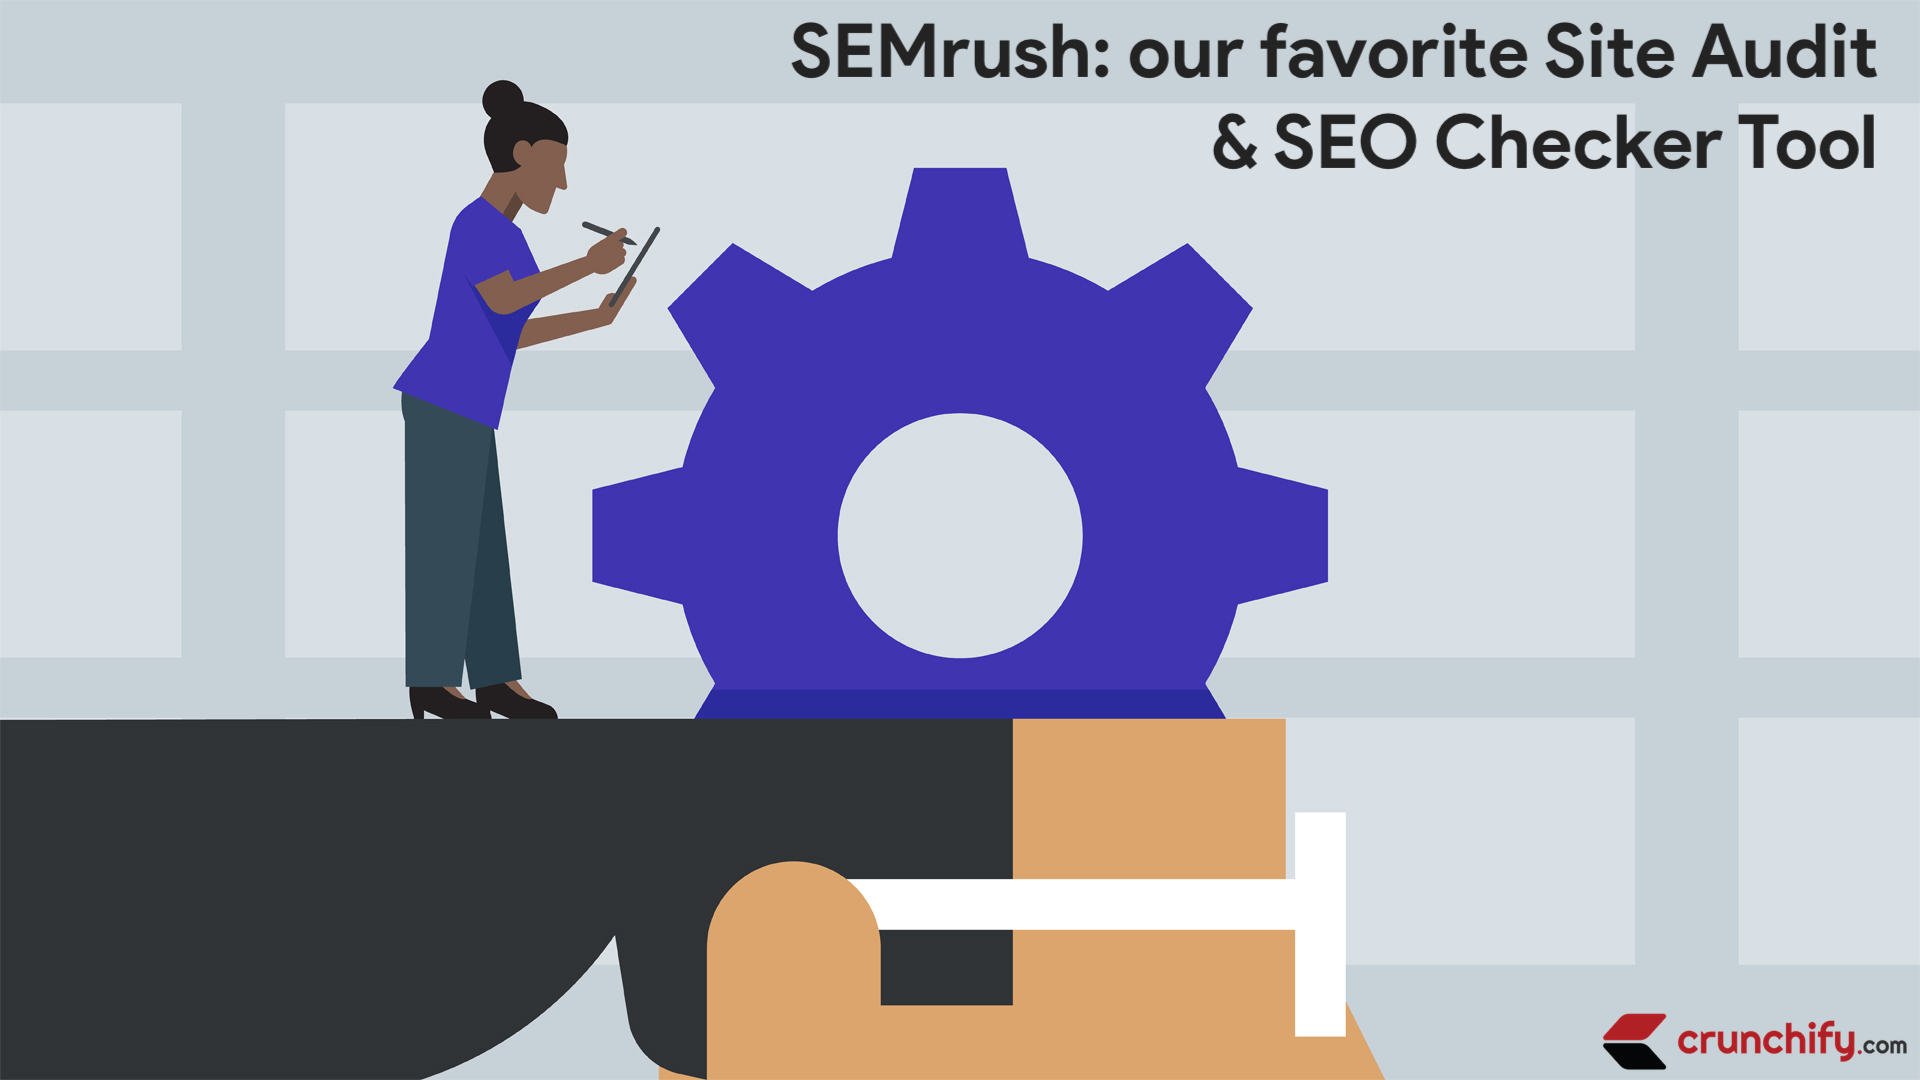 SEMrush - We are loving it - We use it for Crunchify.com